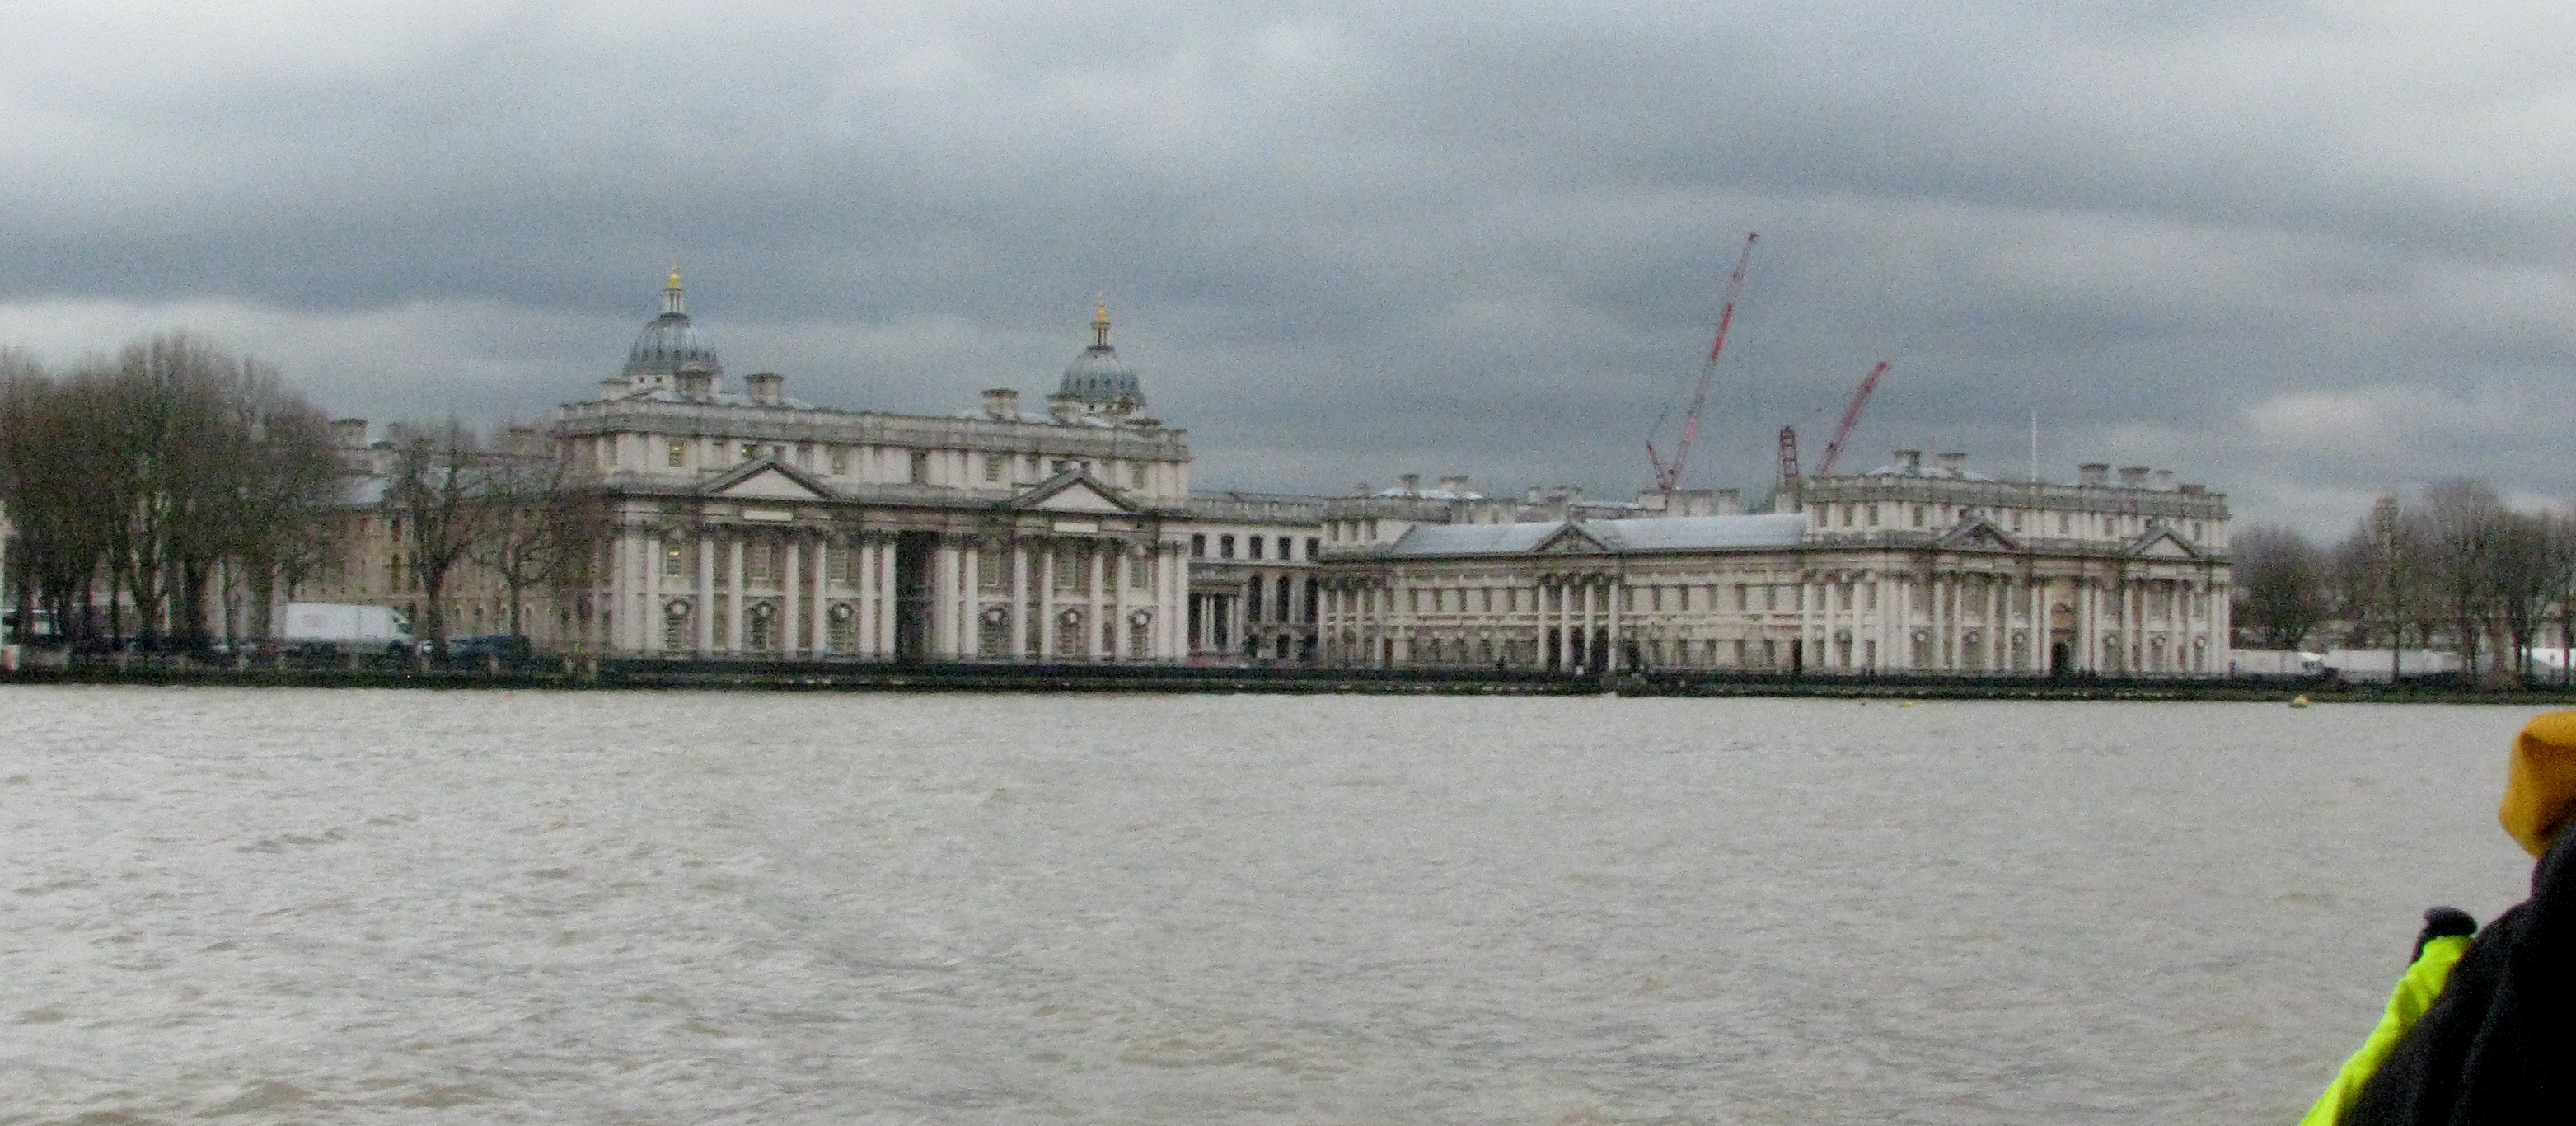 Moving up the Thames, Leander passes by the Old Royal Naval College in Greenwich.